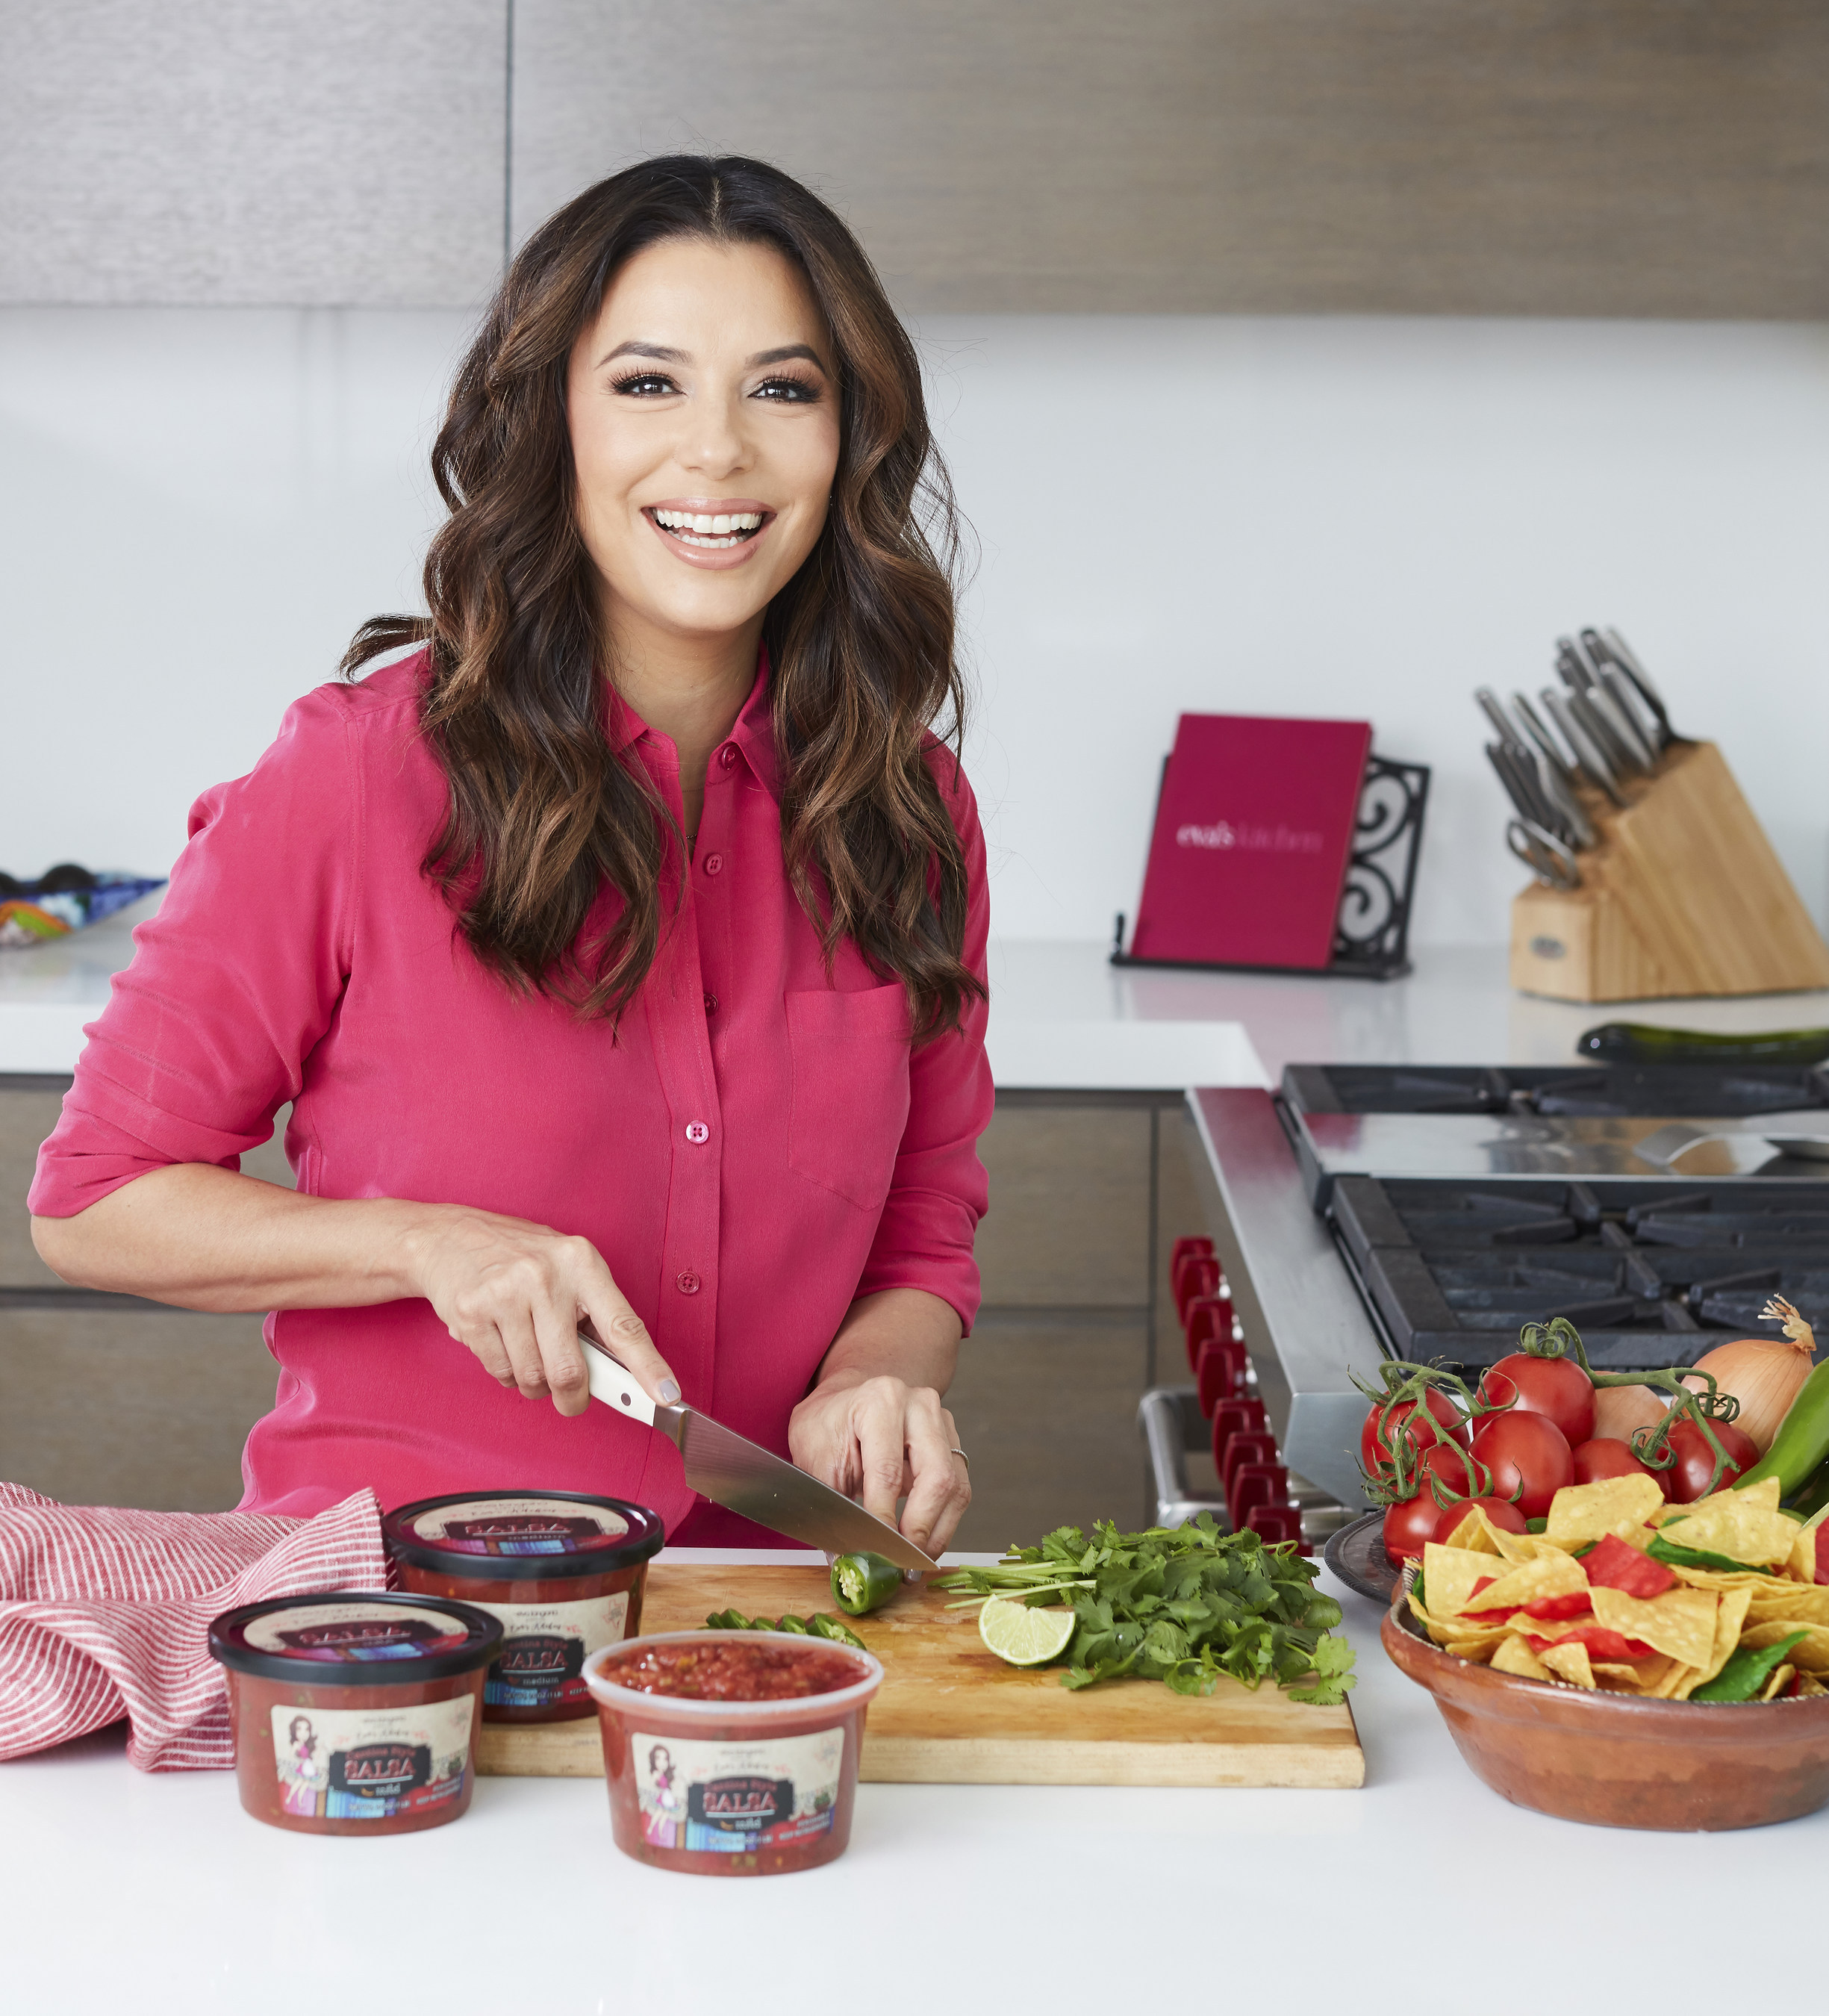 Eva_Longoria_and_Fresh_Cravings_Launch_Eva_s_Cantina_Style_Salsa.jpg